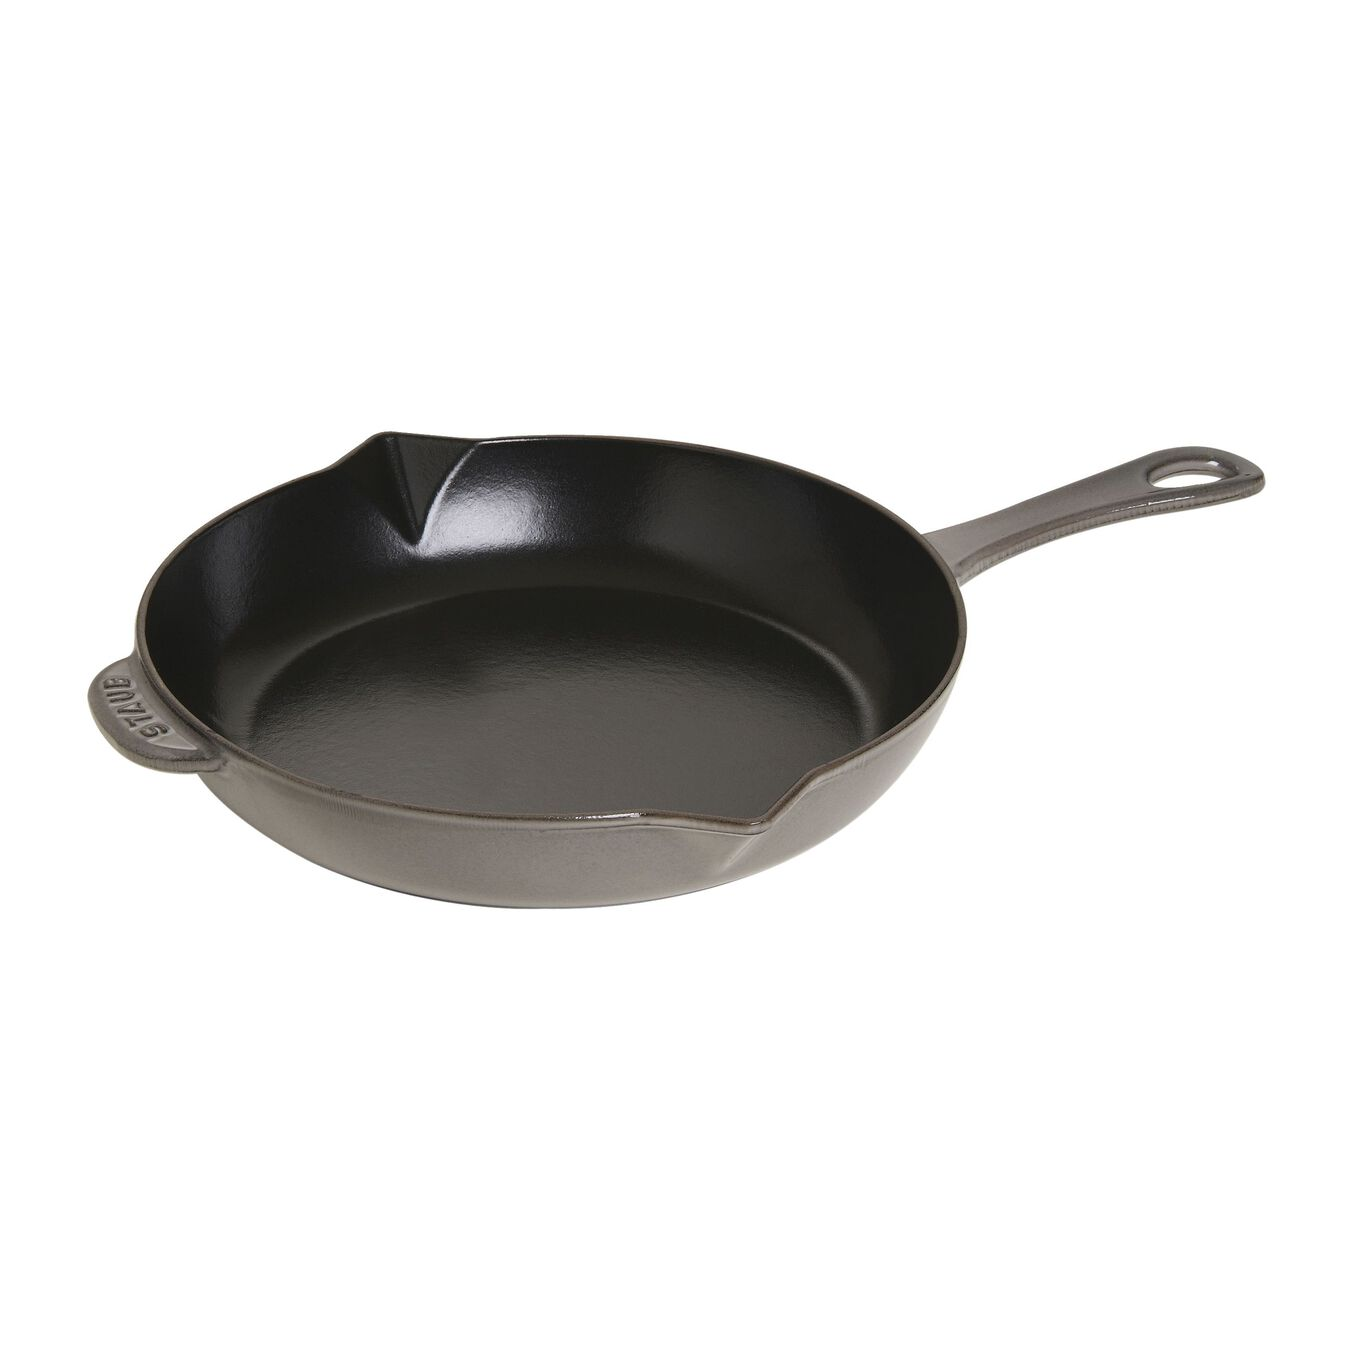 26 cm / 10 inch Cast iron Frying pan with pouring spout, black,,large 2